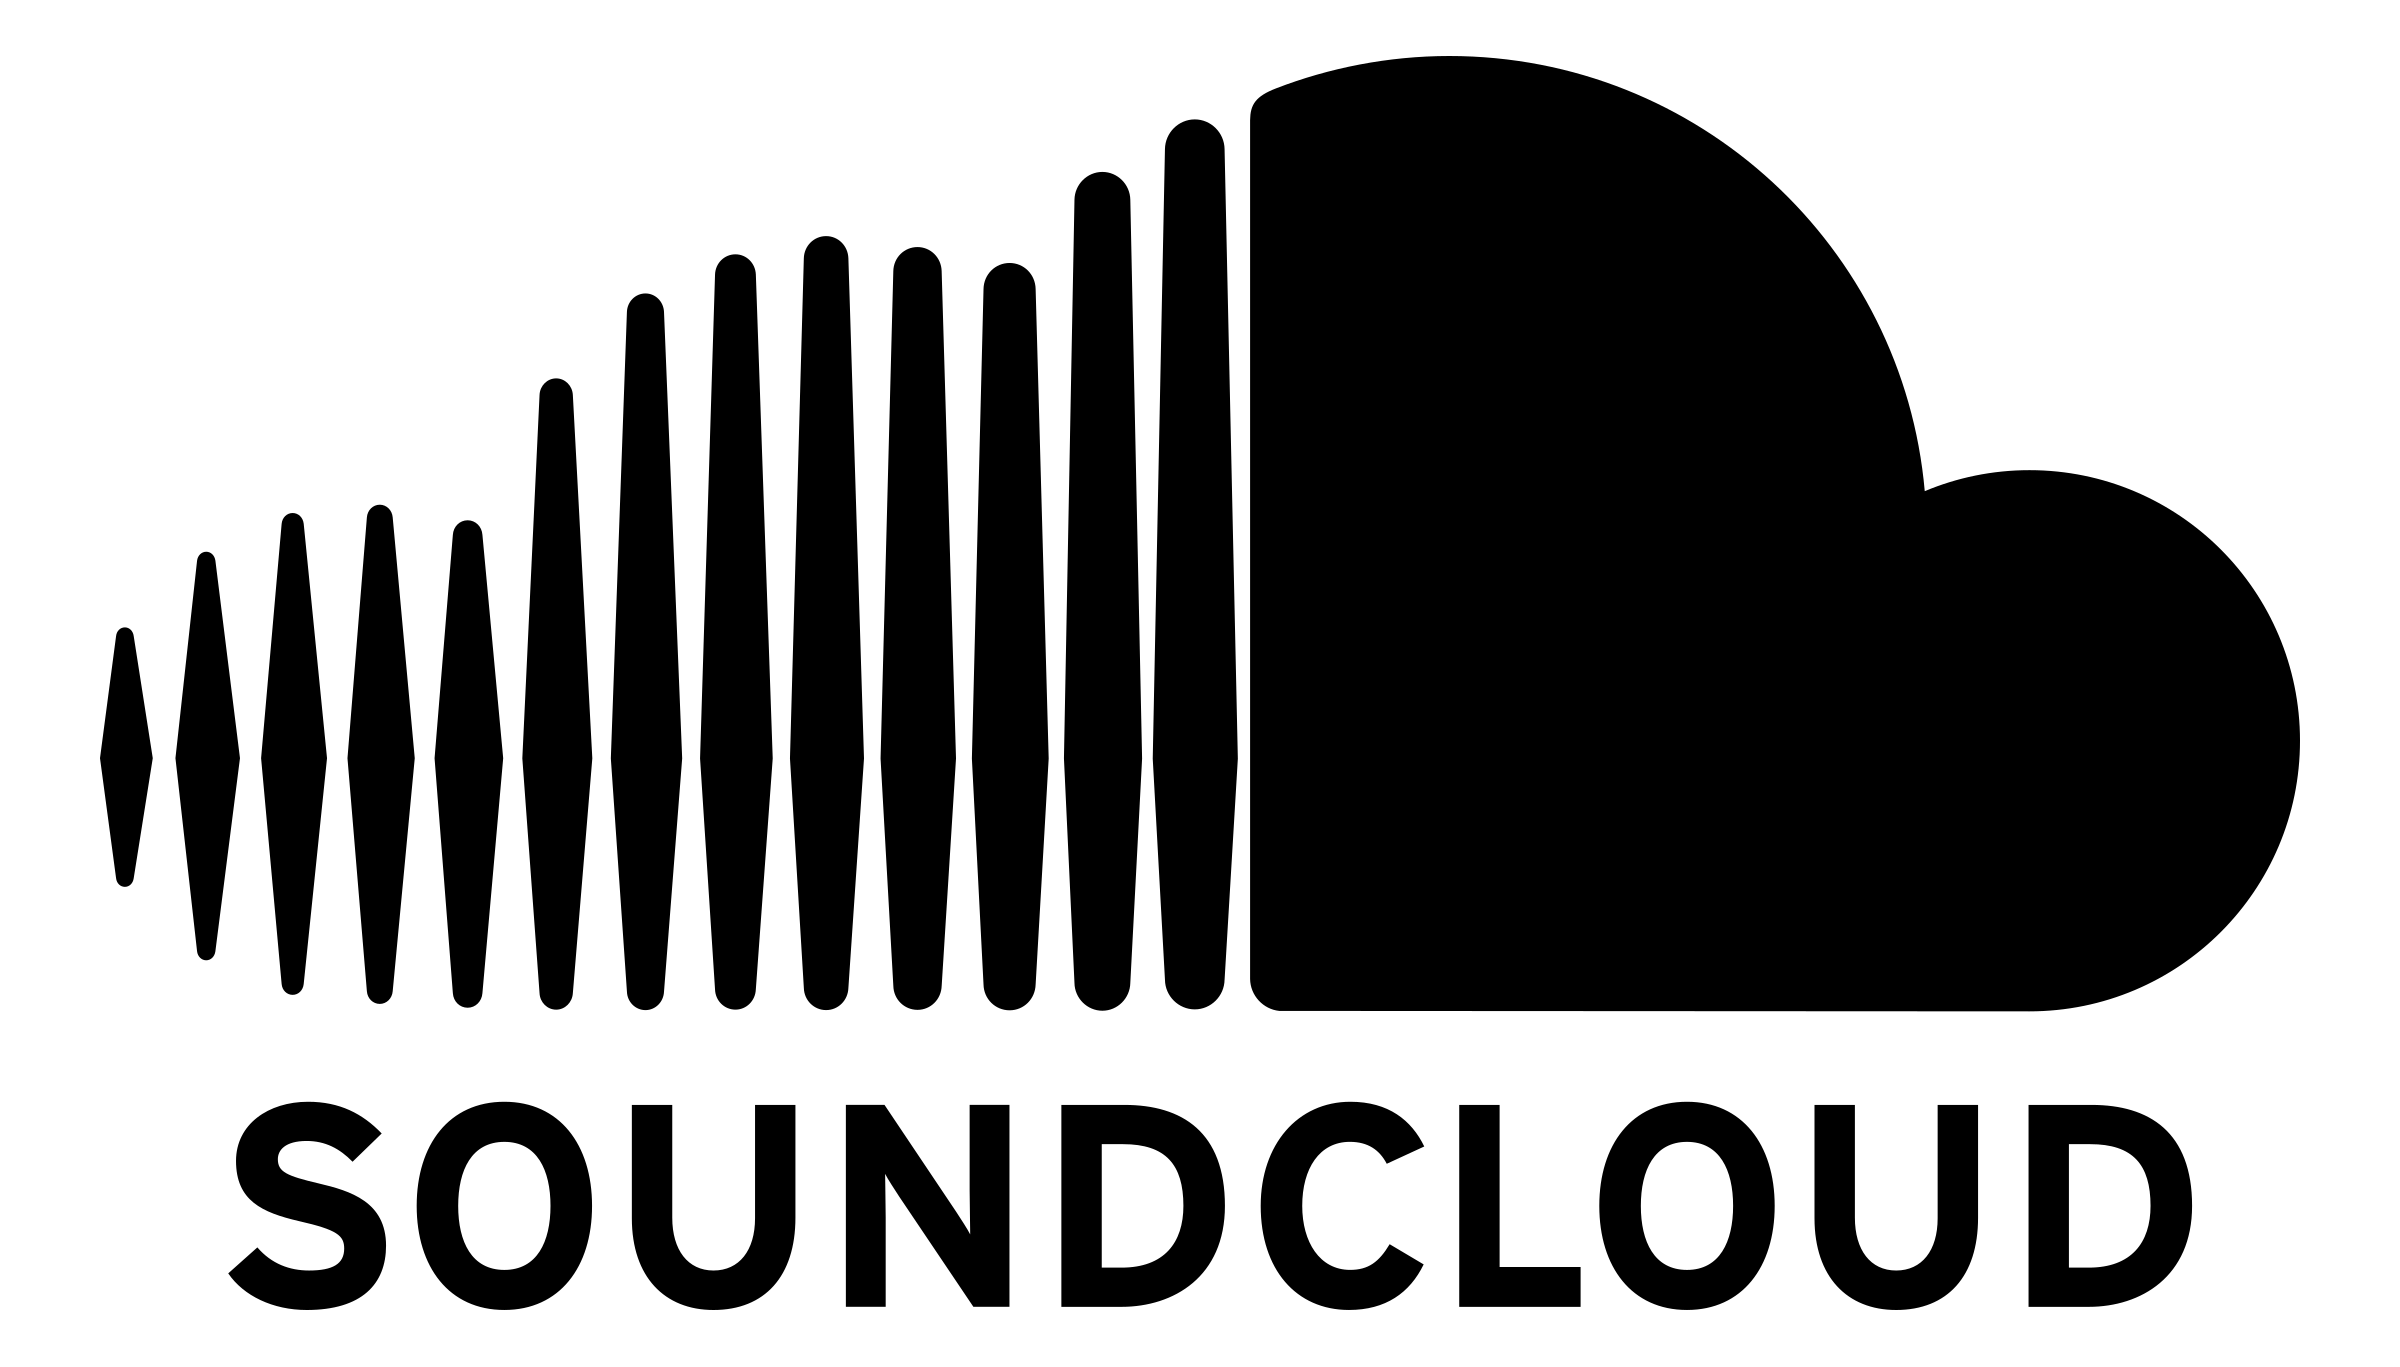 soundcloud-logo-png-4.png